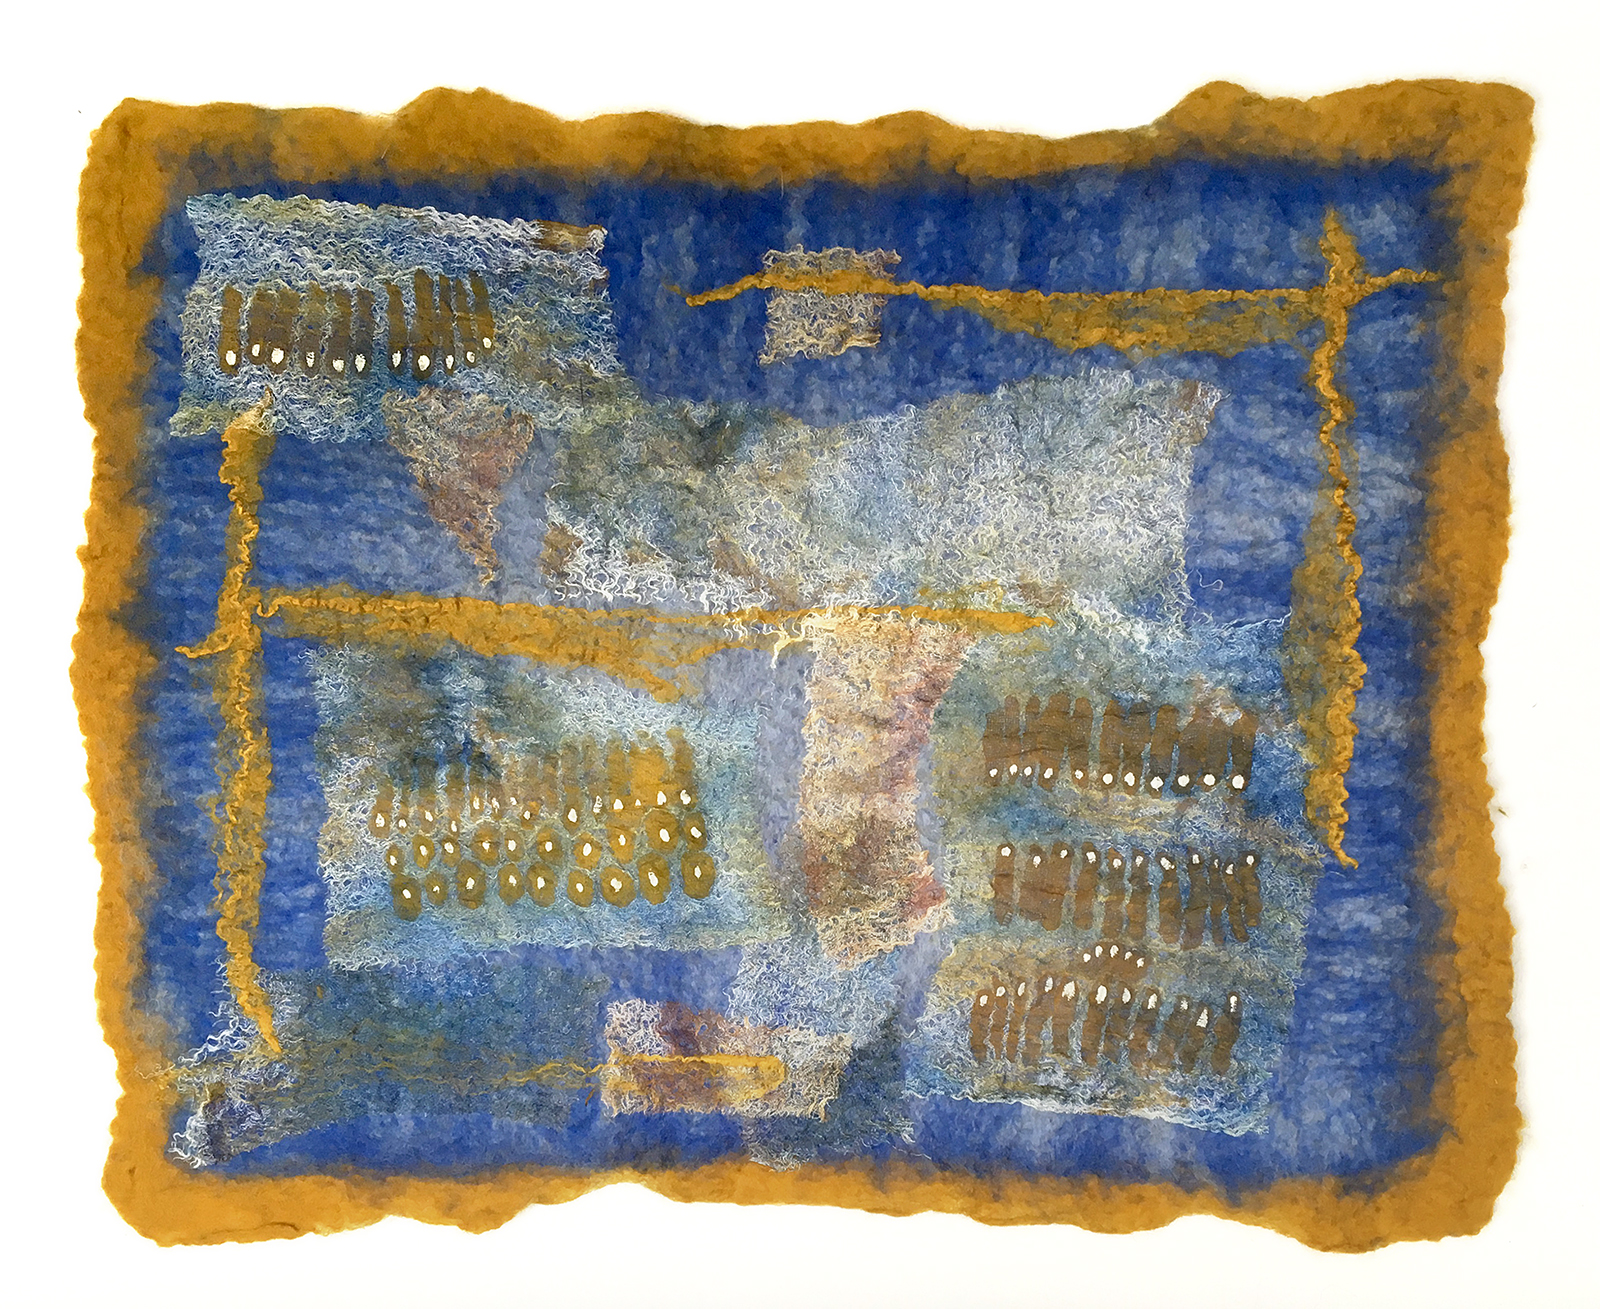 Protazoa Conference by Melanie West, 2019 wool and hand painted silk